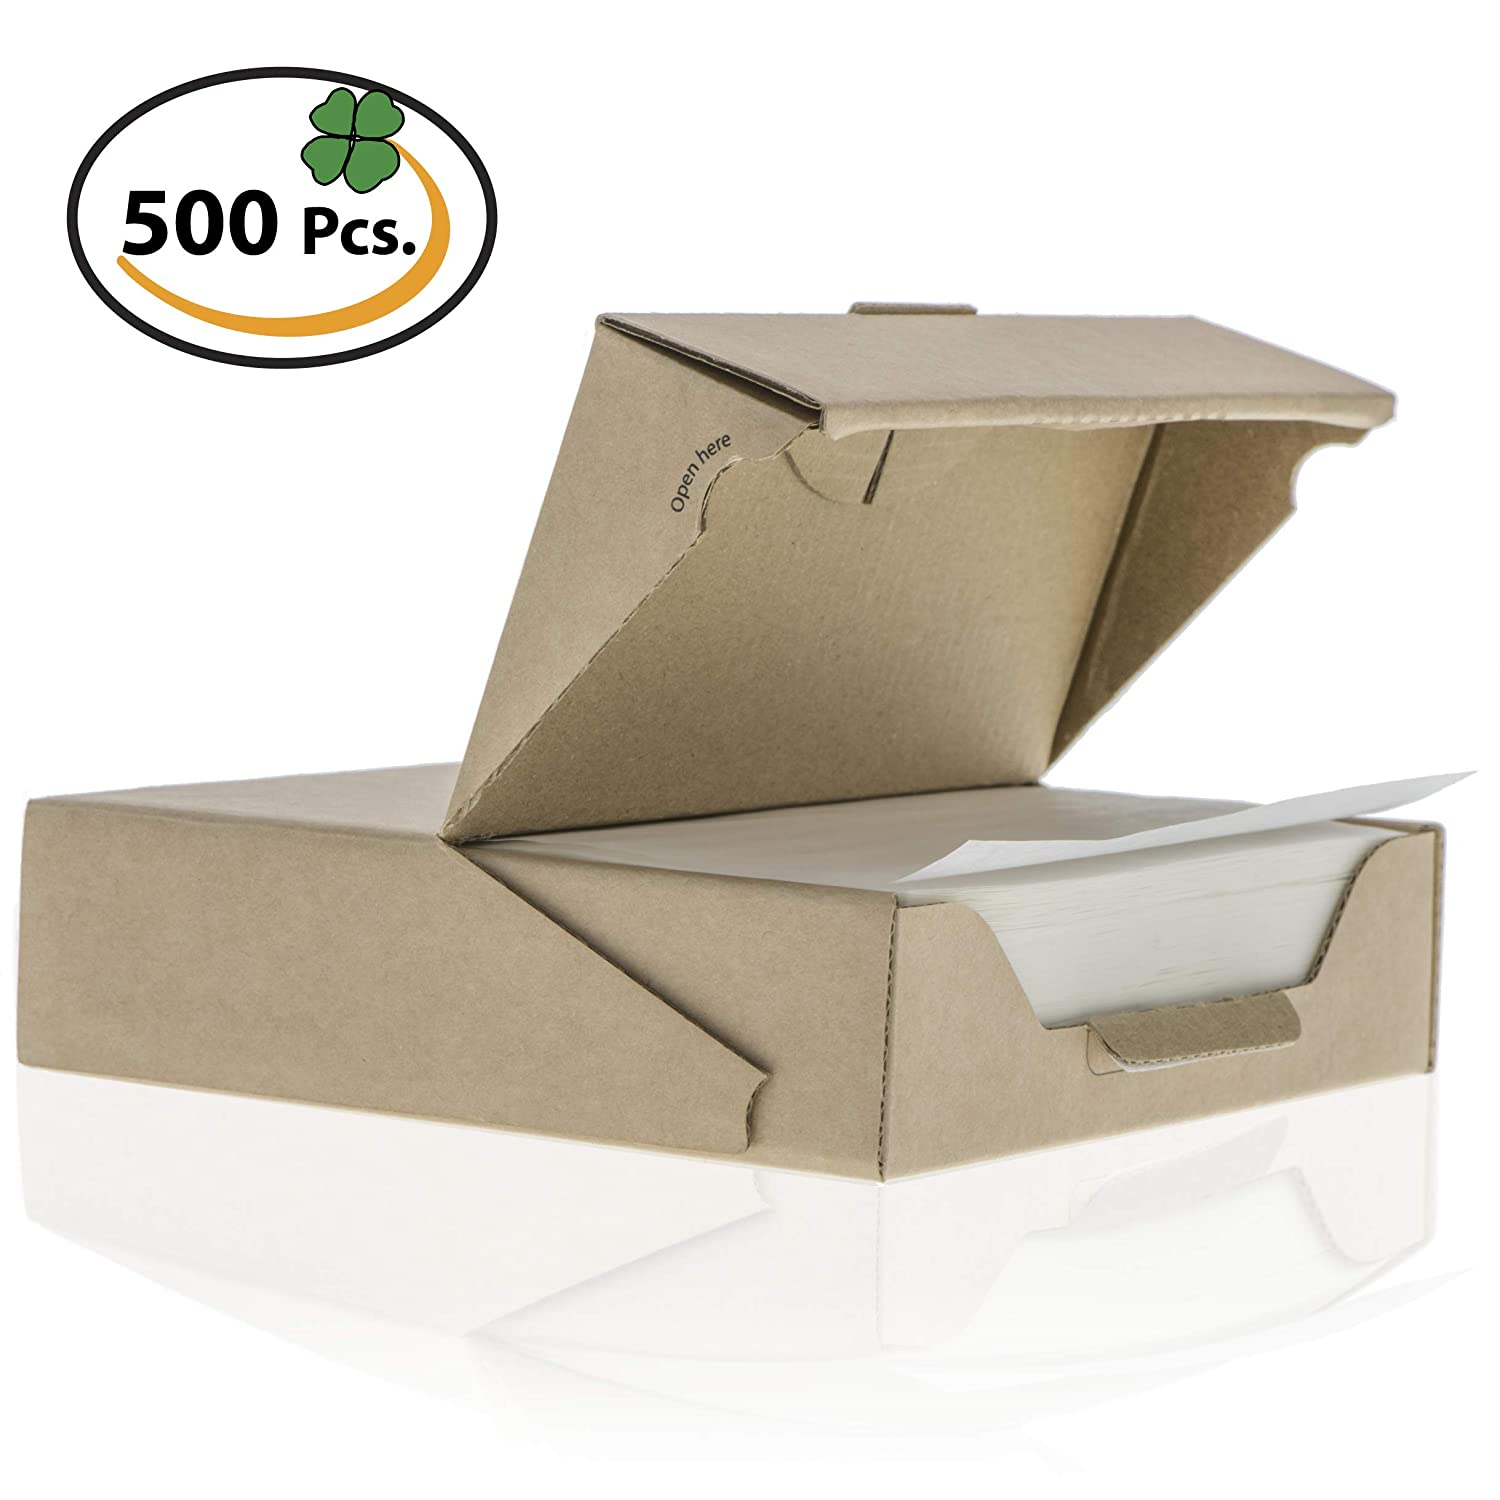 ZeZaZu Parchment Paper Squares 5.5 x 5.5 inches (1000 Sheets) - for Baking, Hamburger | Dual Coated Non-Stick, Convenient Recyclable Dispenser Box